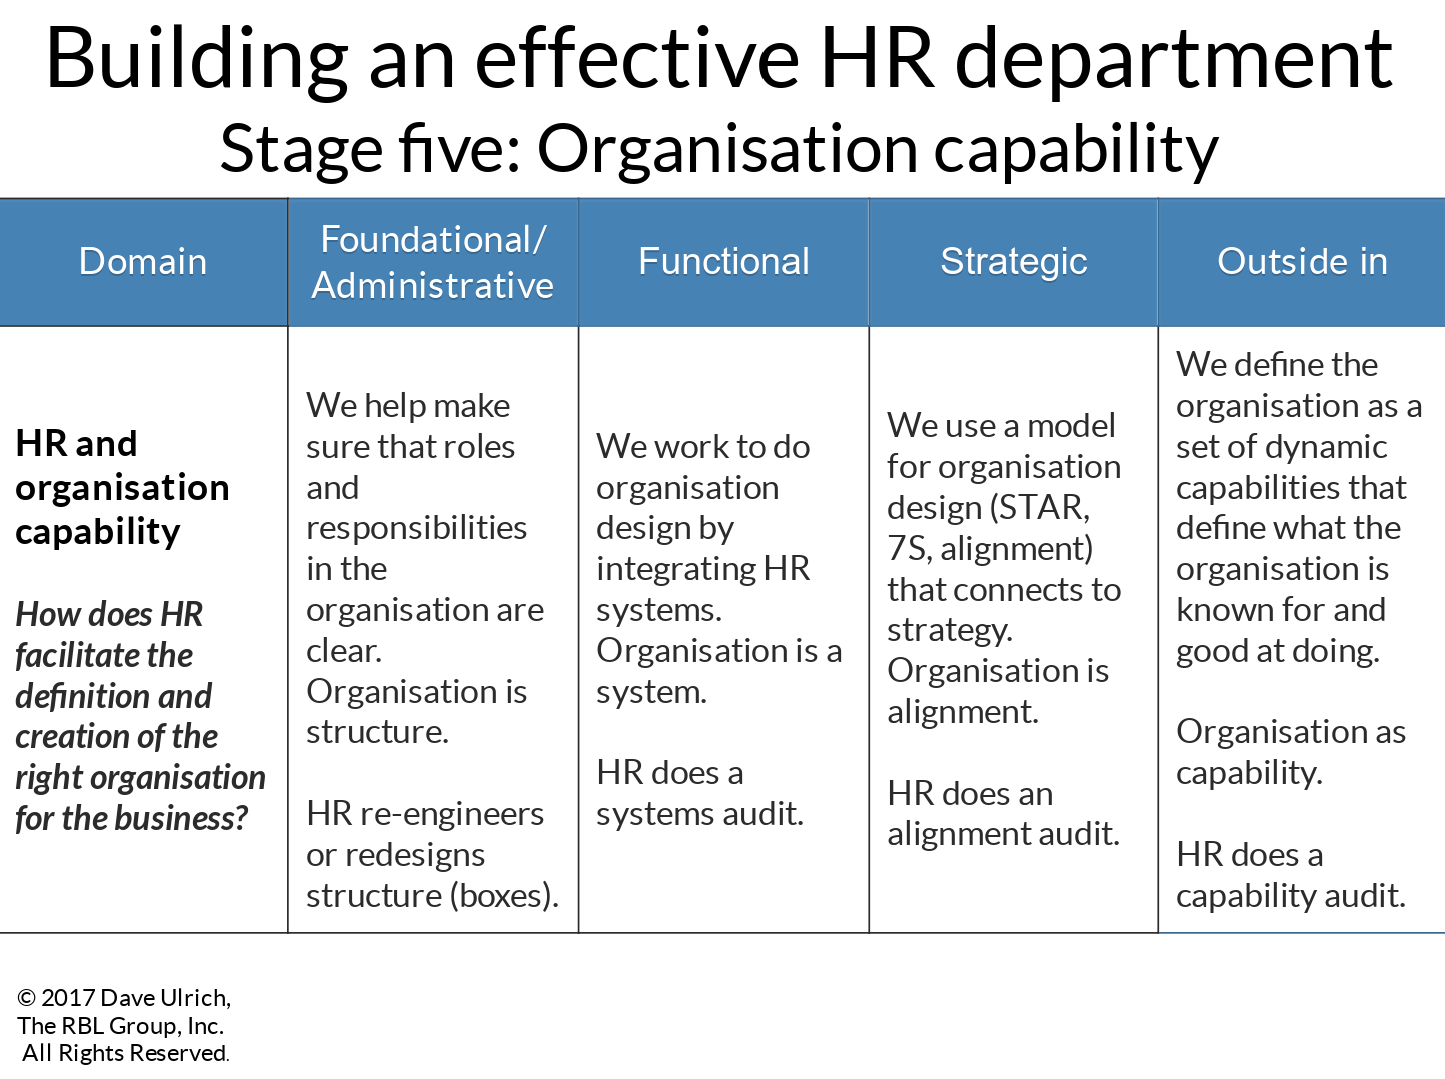 Building an effective HR department stage five